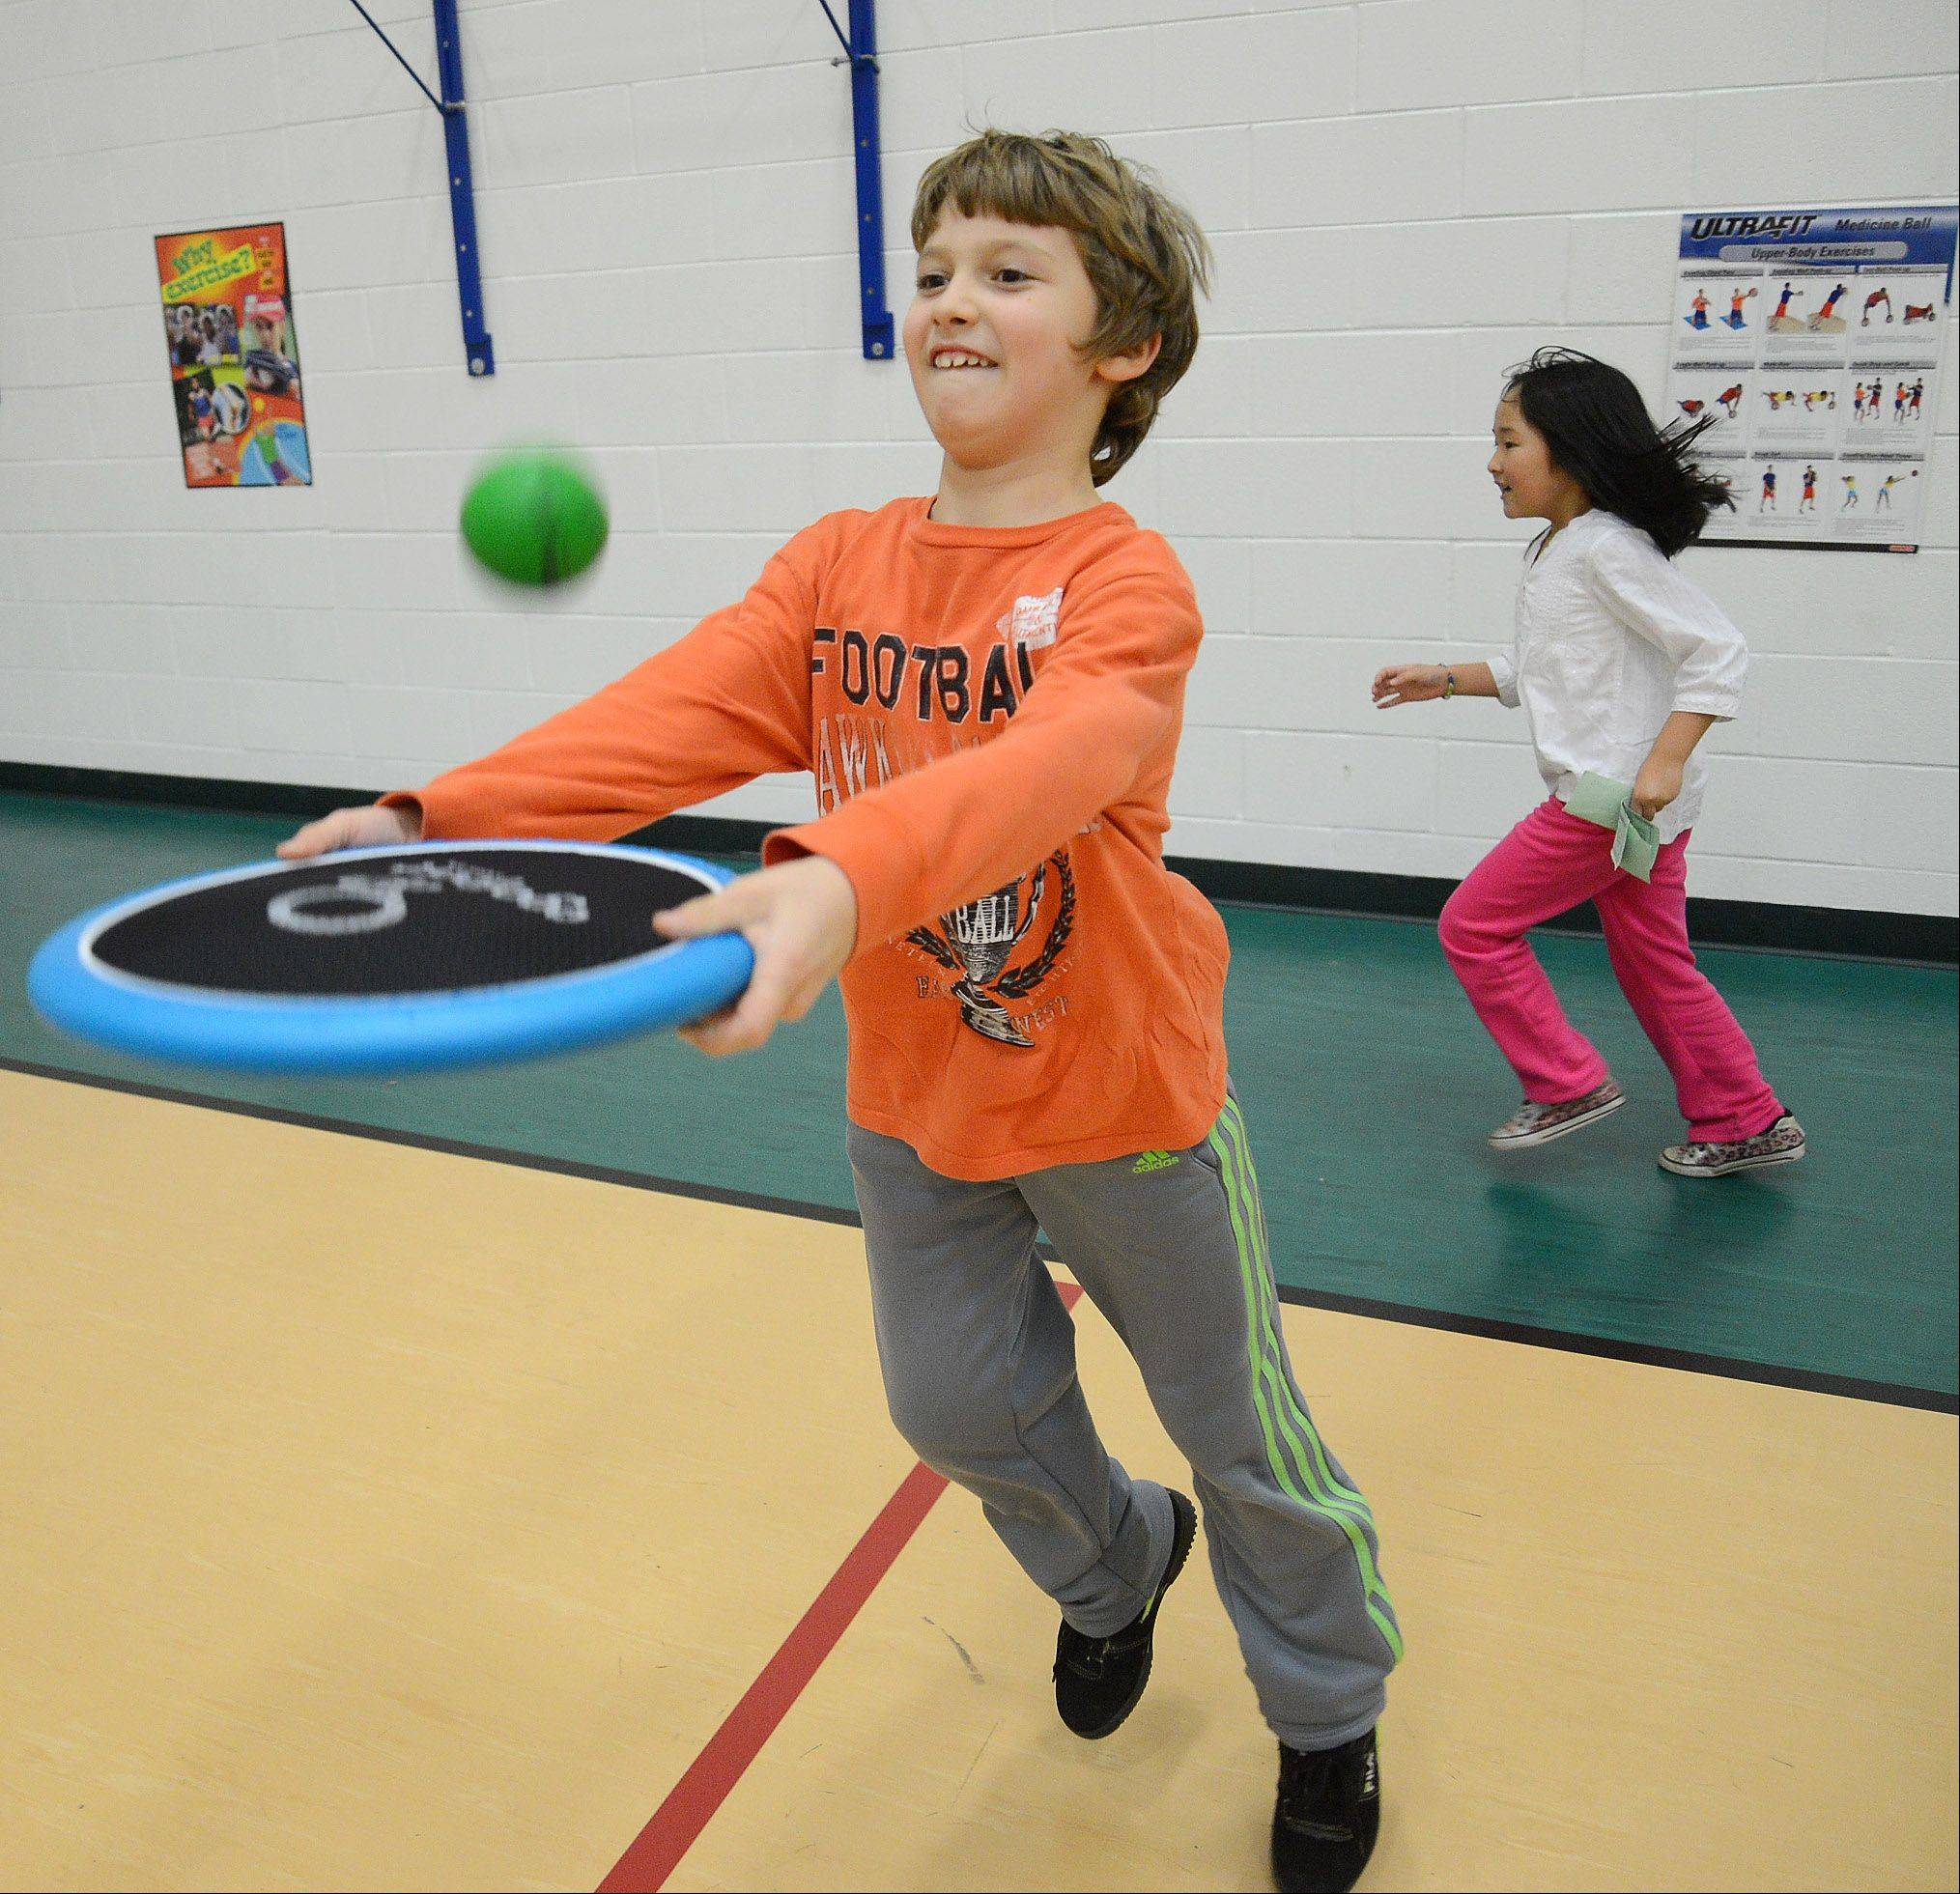 Ivan Popov plays with the OgoSport disk game during one of Will Hogan's recent P.E. classes at the Ridge Family Center for Learning in Elk Grove Village.